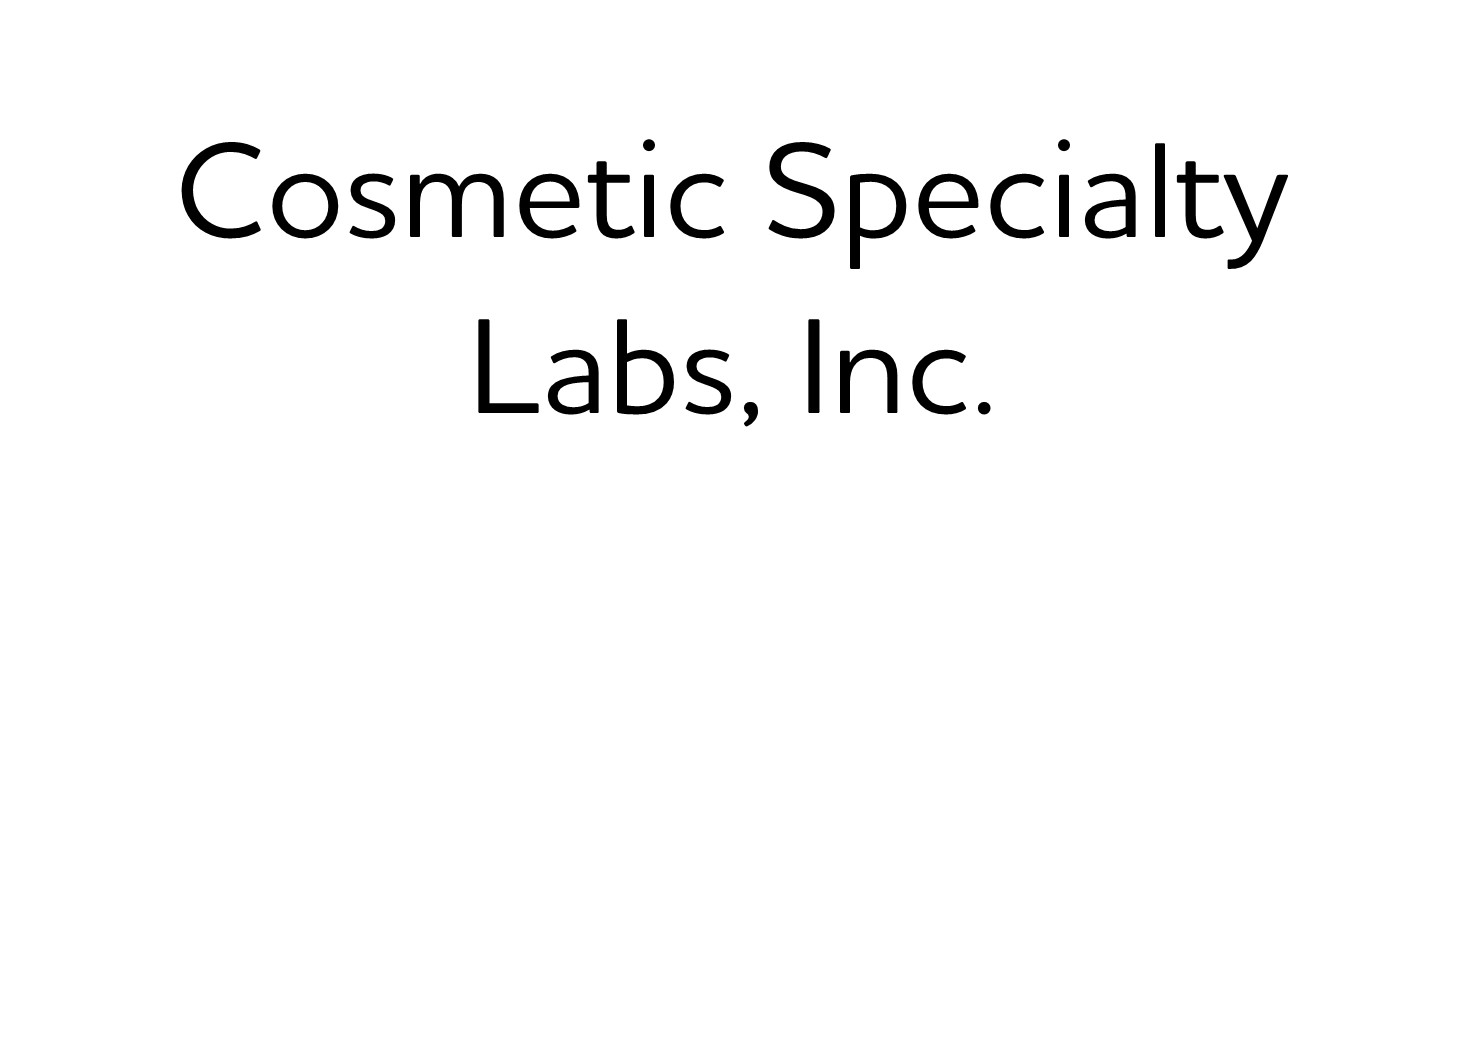 410. Cosmetic Specialty Labs, Inc. (Silver)